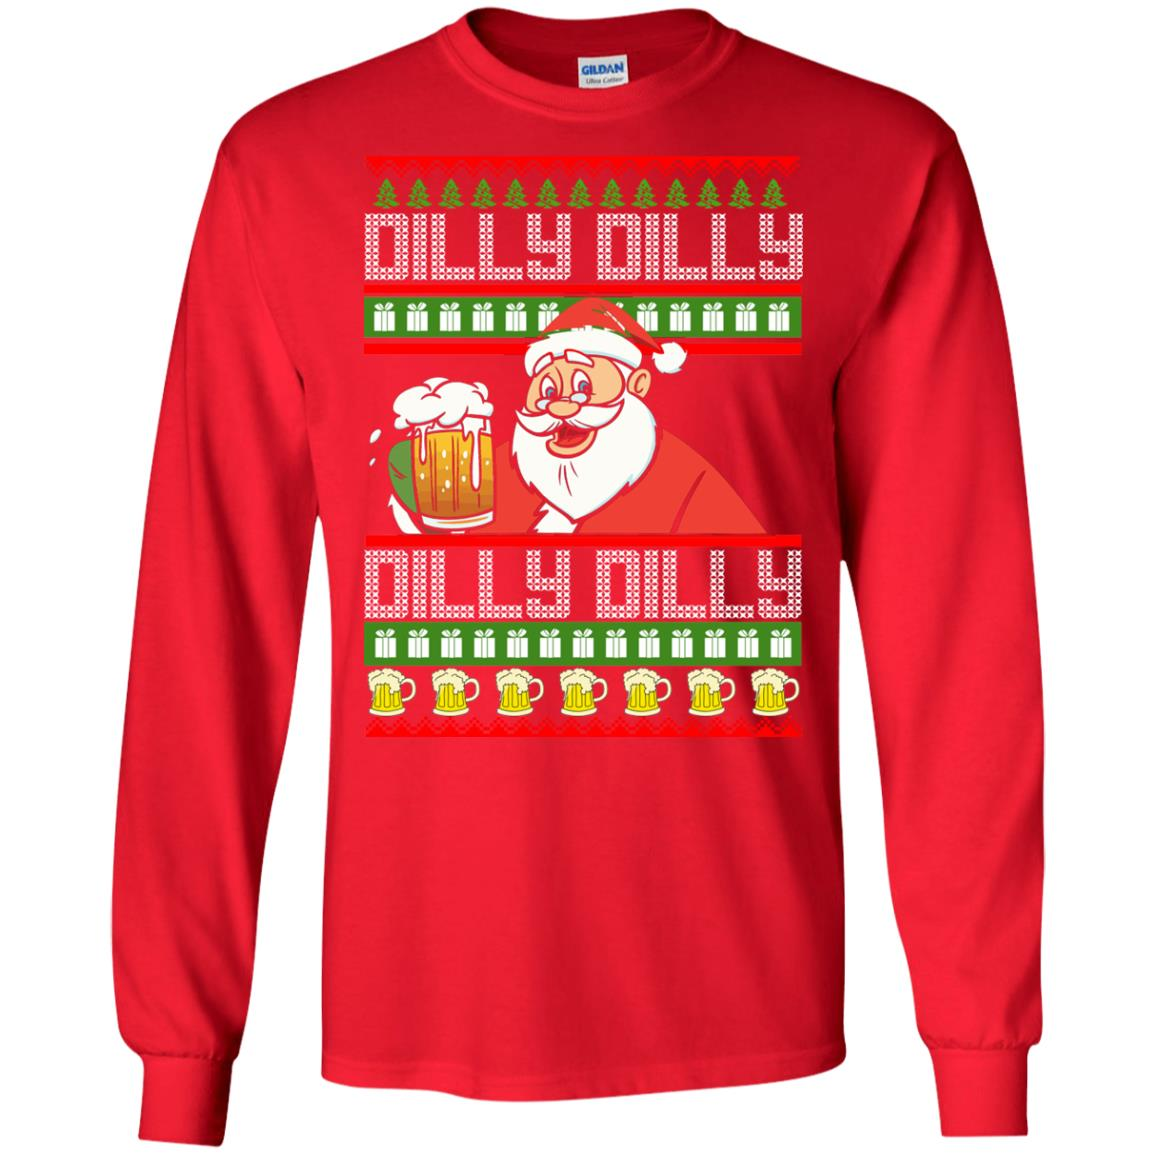 image 4183 - Dilly Dilly Christmas Sweater, Shirt, Hoodie